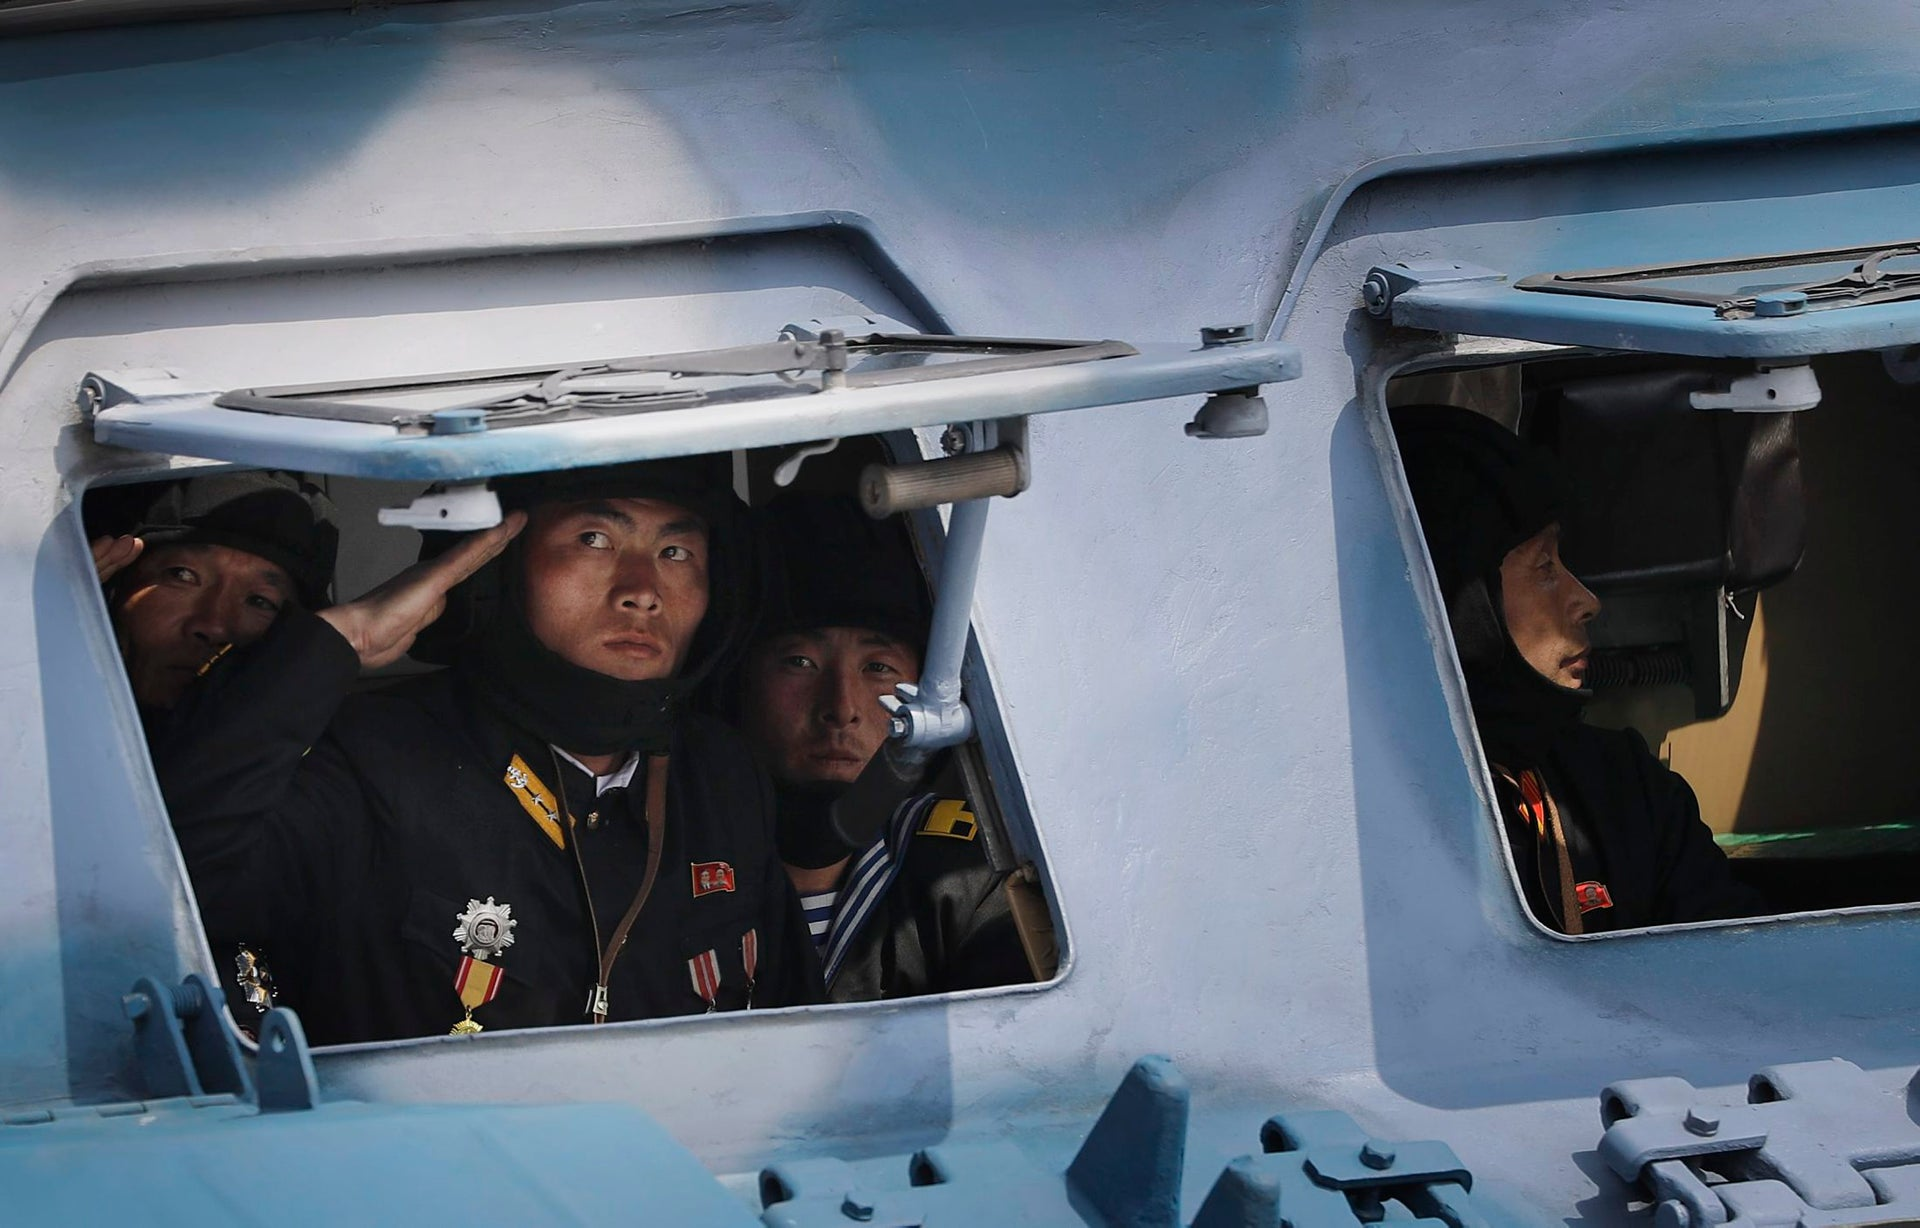 North Korean soldiers look out of a military vehicle during a military parade in honor of the country's founder Kim Il-Sung, in Pyongyang, April 15, 2017.